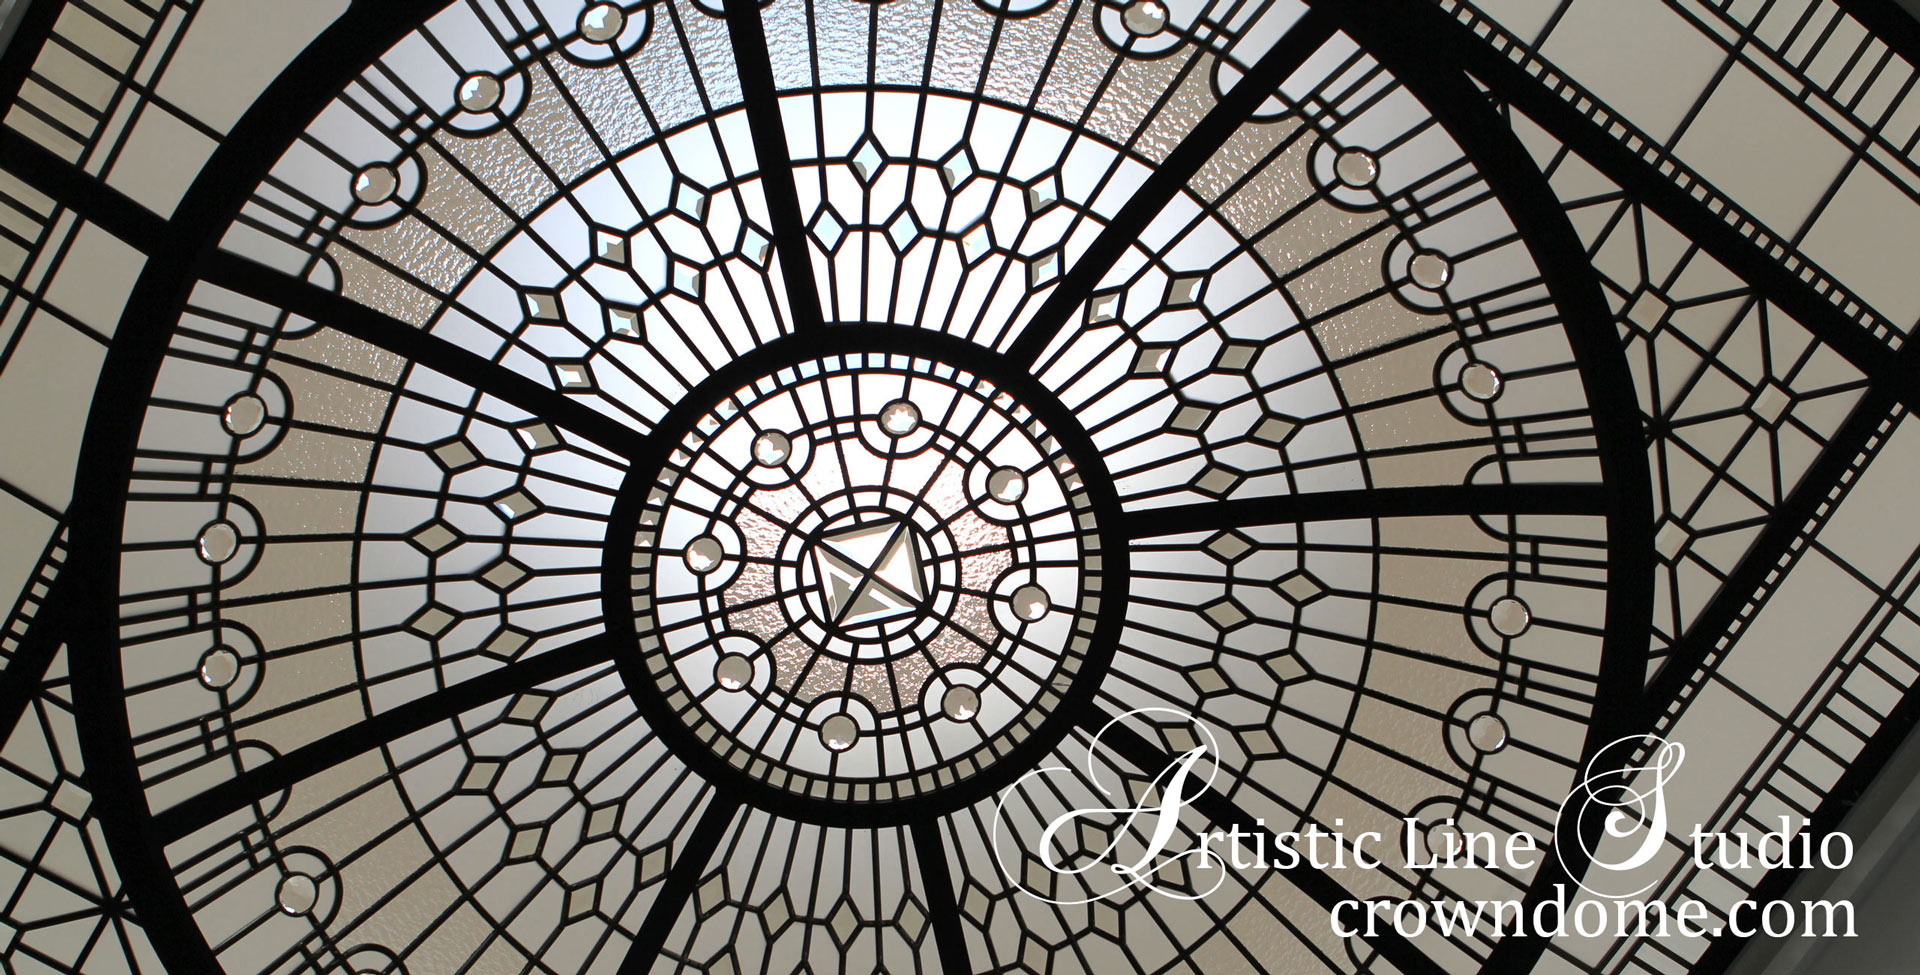 Leaded glass dome design for a bathroom decorative glass ceiling with clear textured glass, large glass jewels, beveled glass in contemporary geometrical design for a bathroom of a custom built house